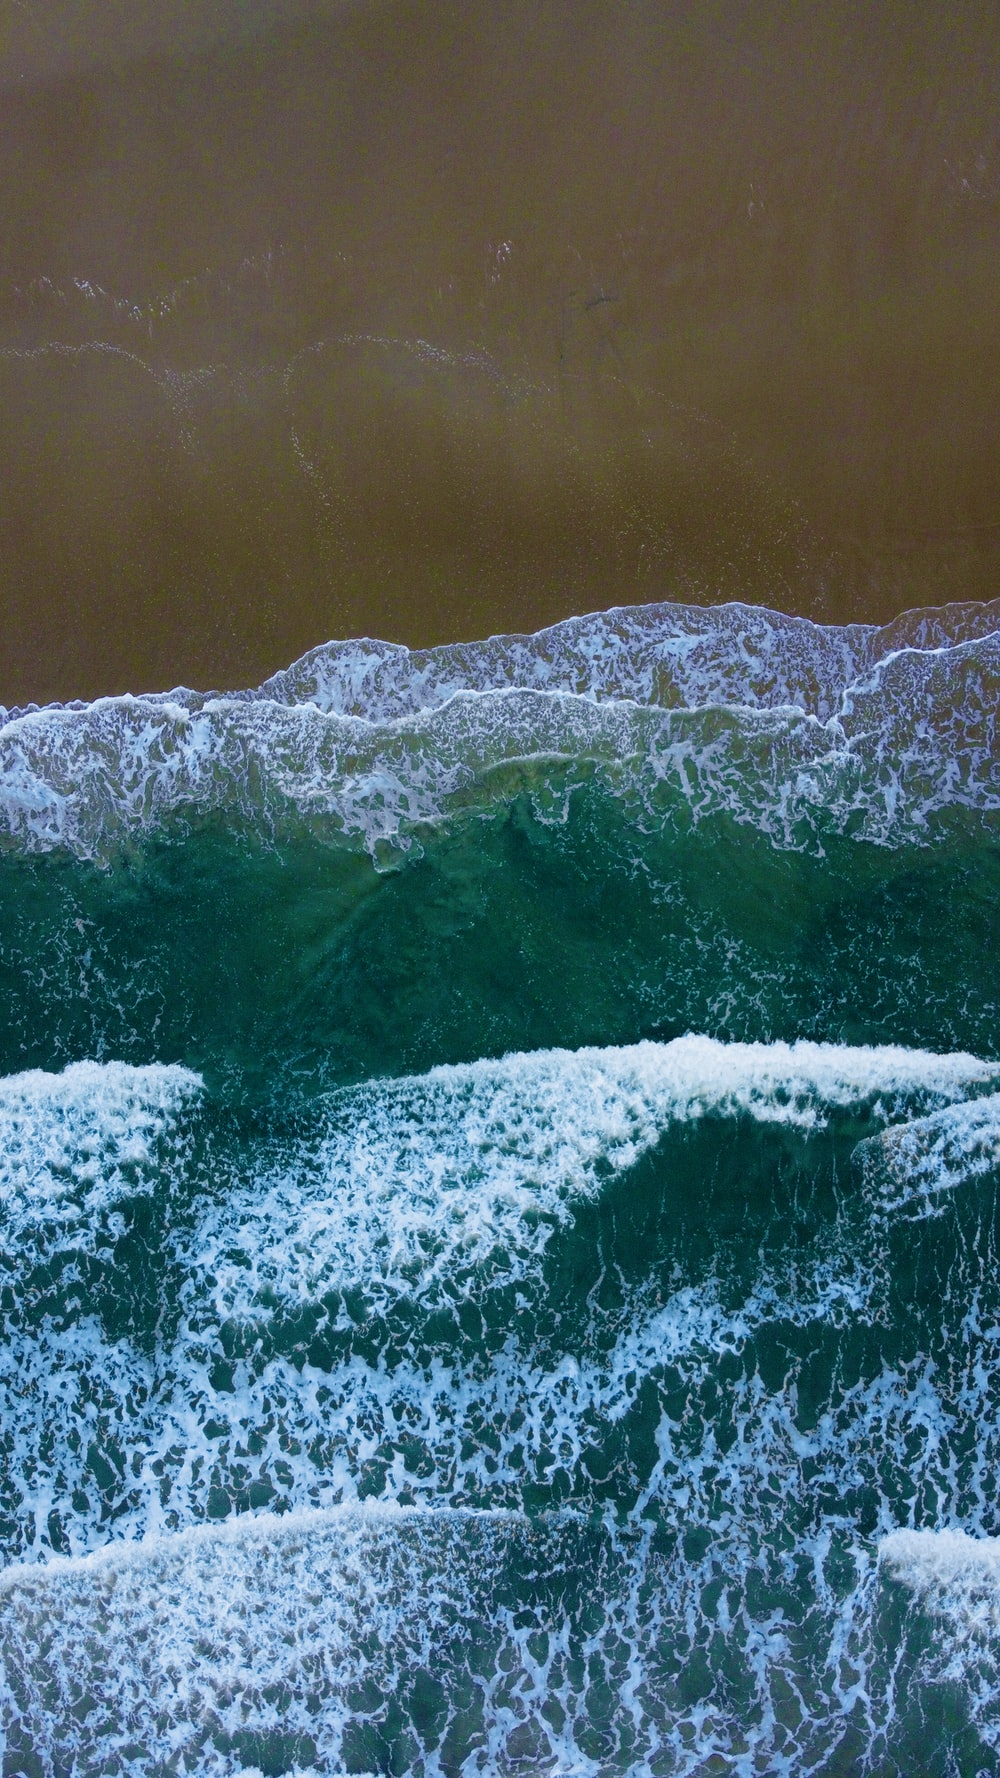 water waves on shore during daytime